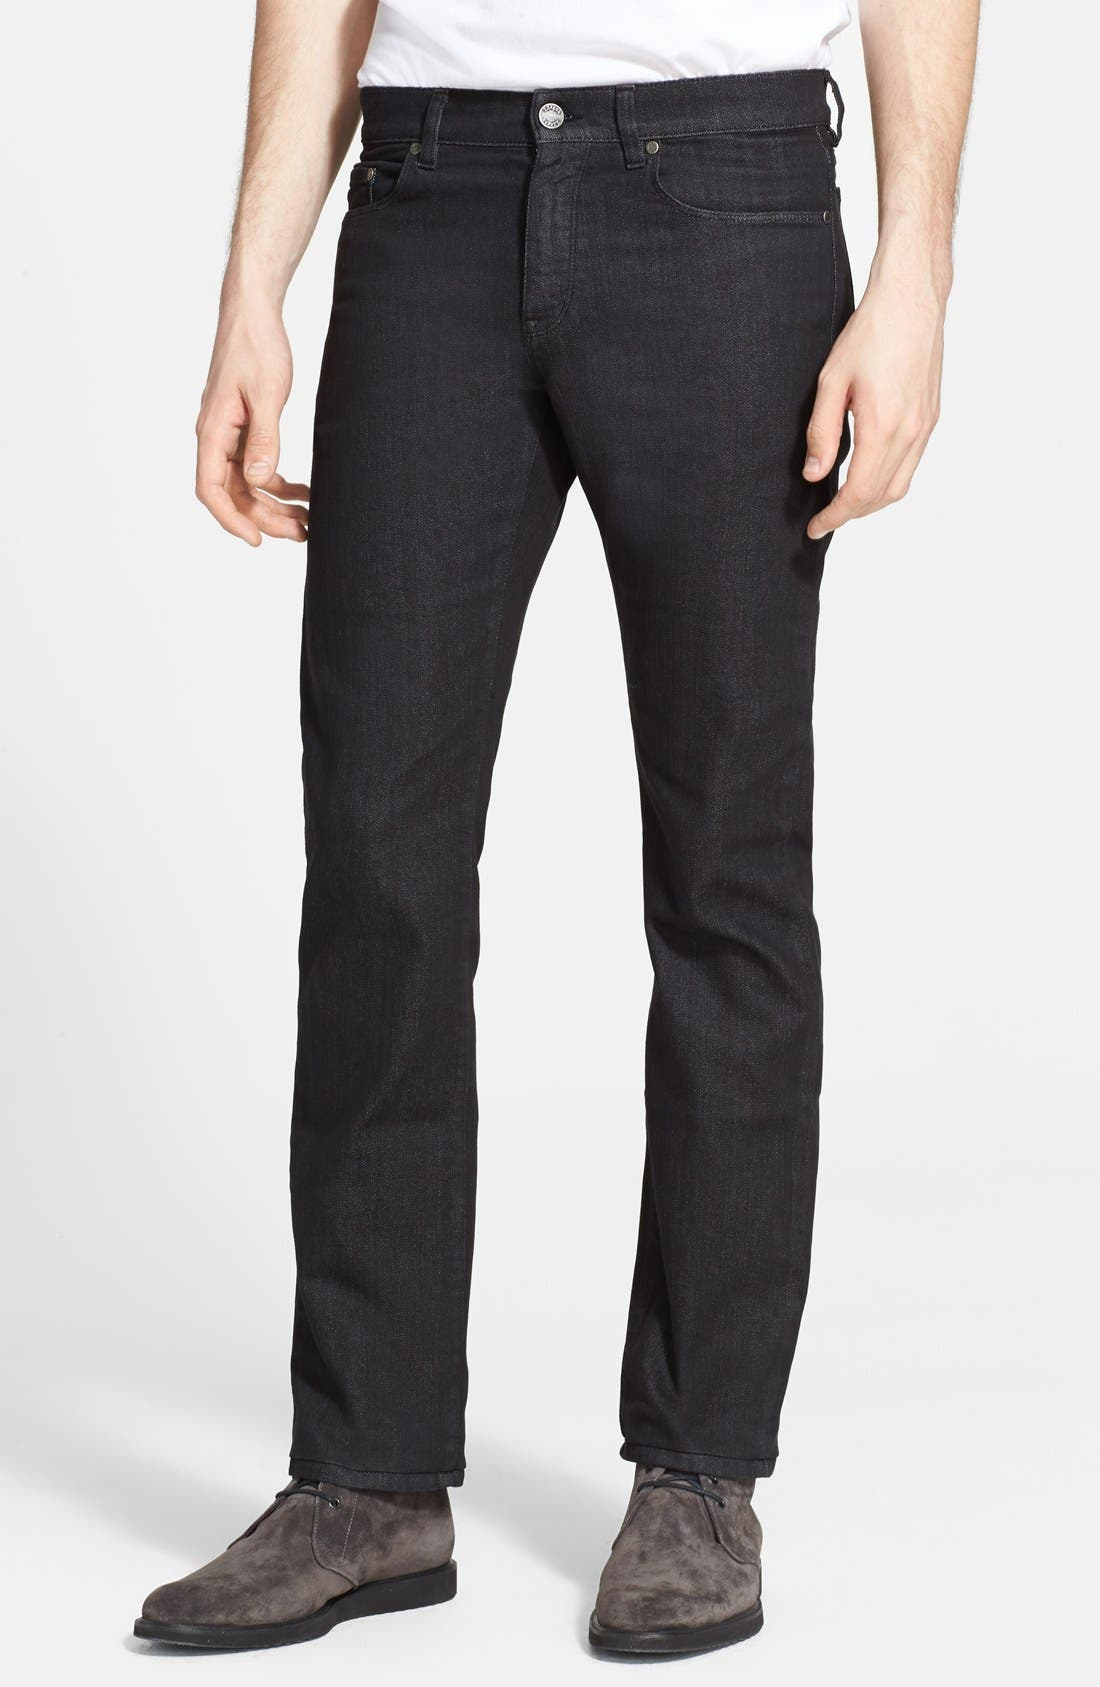 Alternate Image 1 Selected - Z Zegna Slim Straight Leg Jeans (Black Solid)